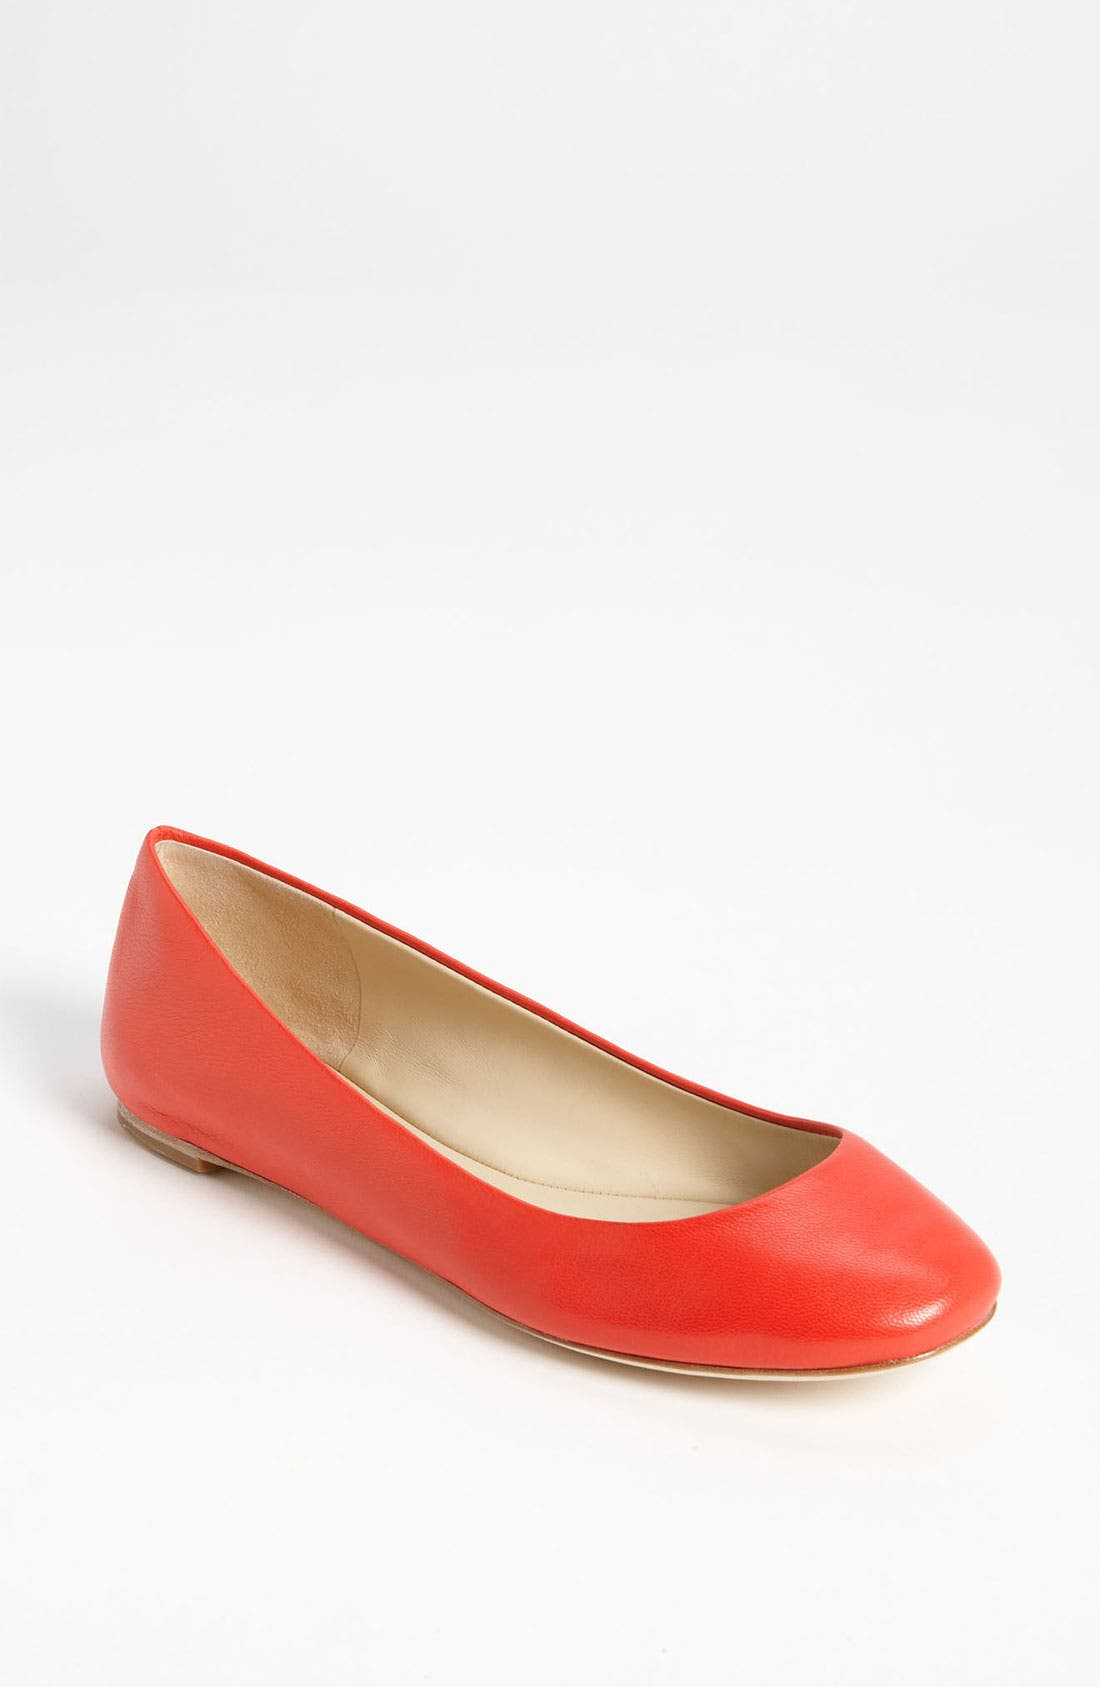 Alternate Image 1 Selected - Vera Wang Footwear 'Lara' Flat (Online Only)